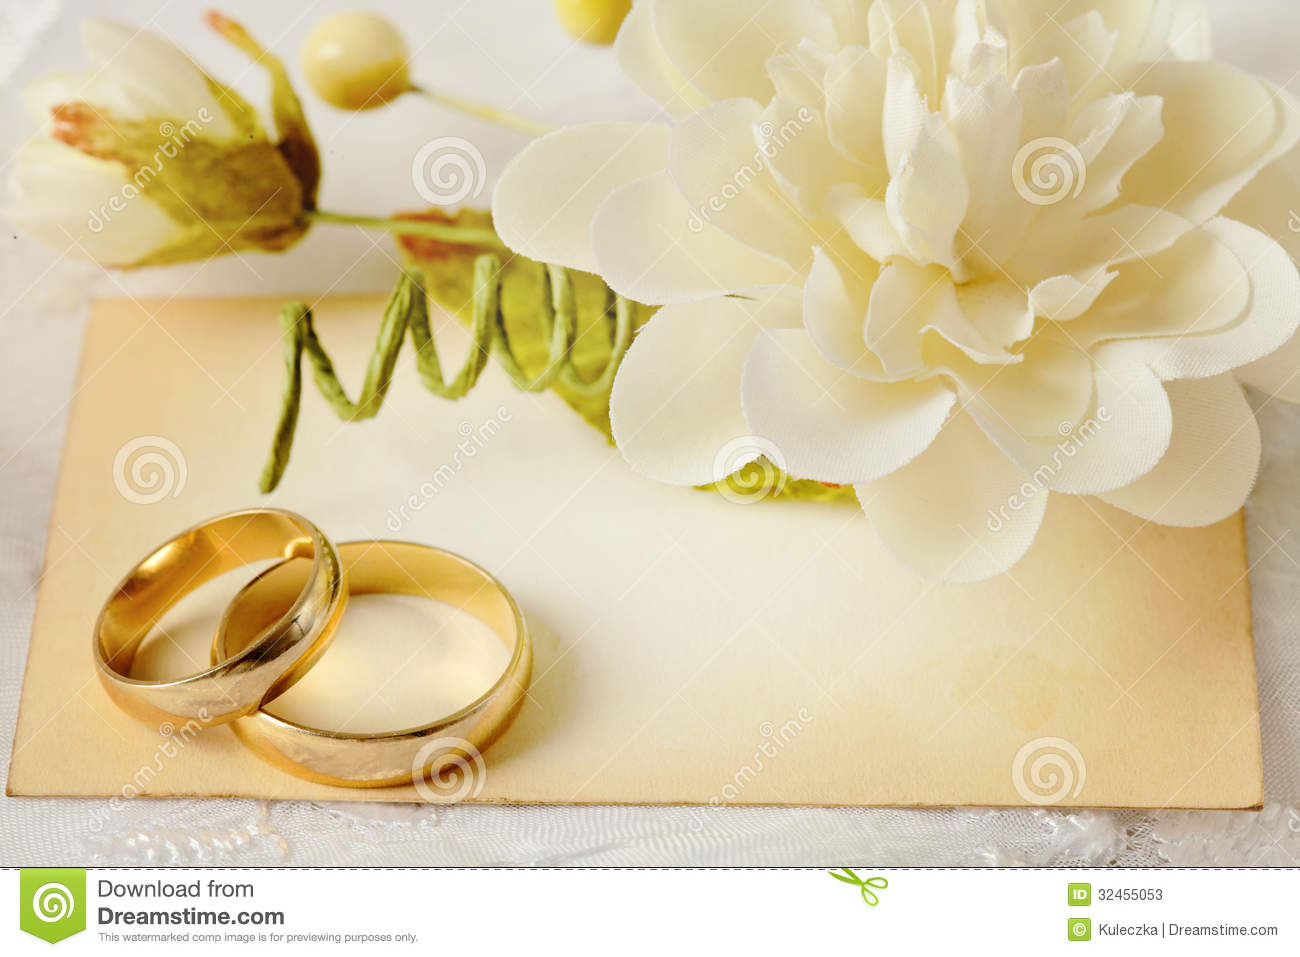 Wedding invitation stock image. Image of wedding, gold - 32455053